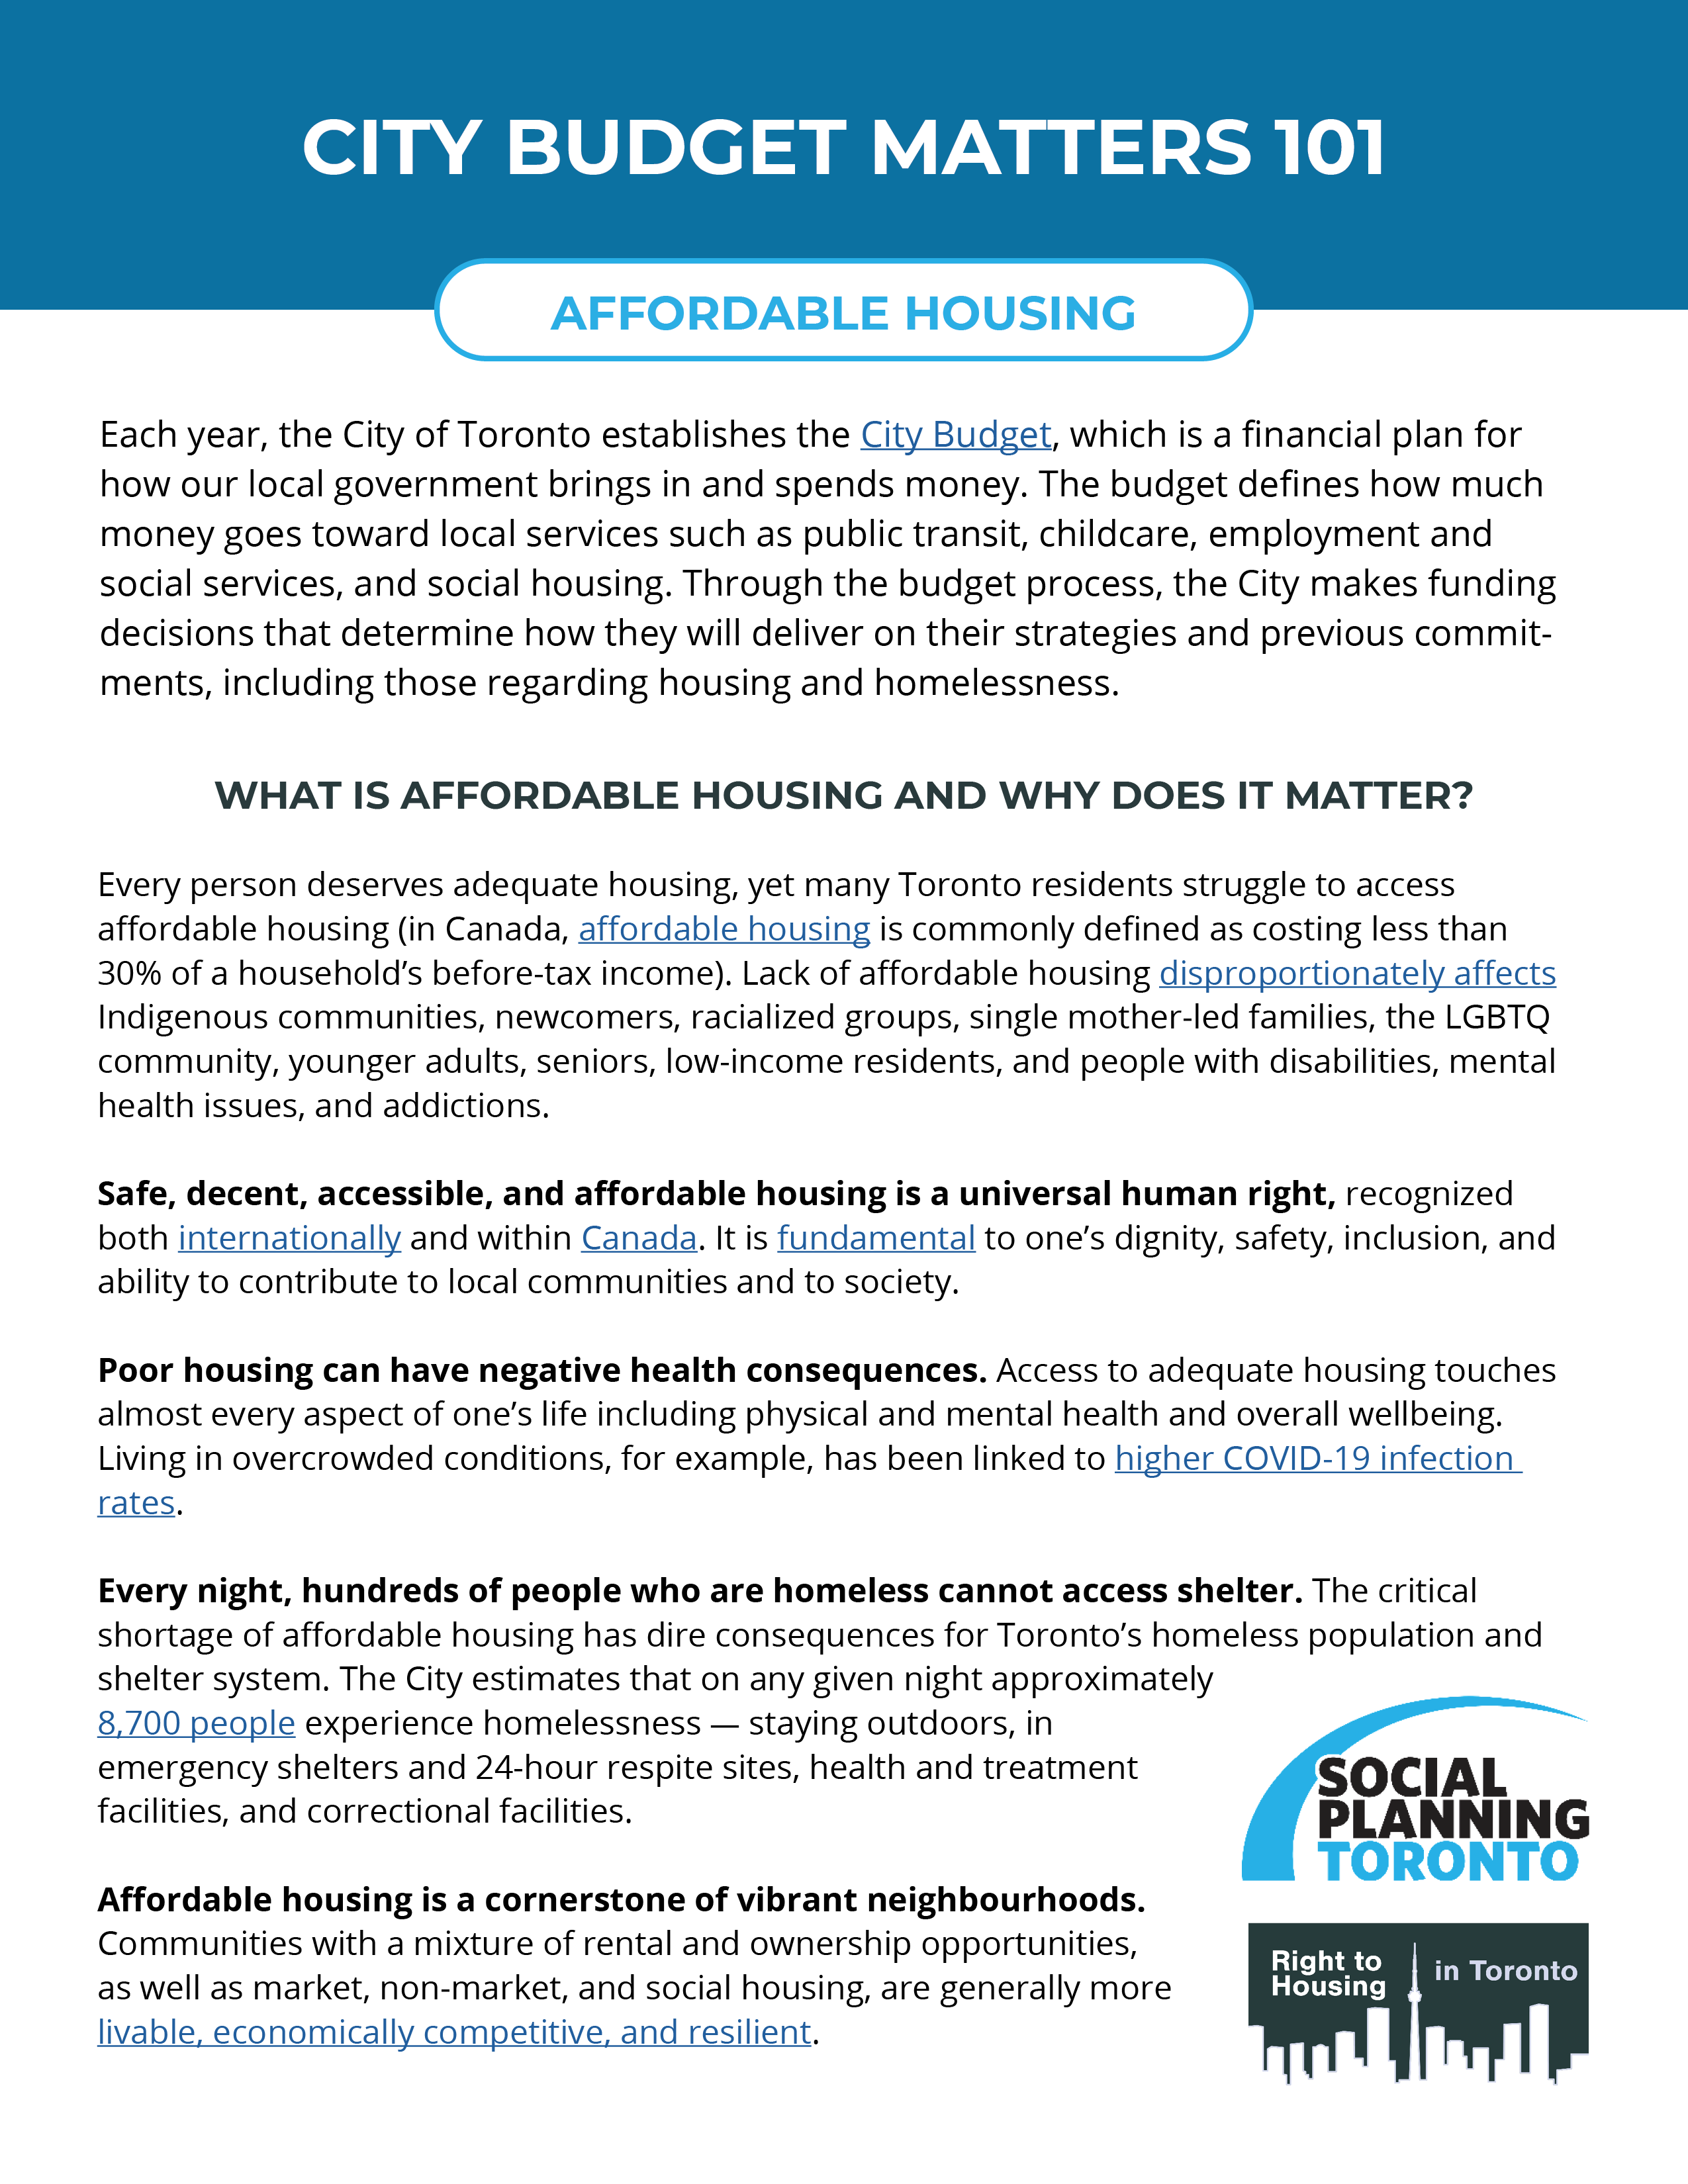 backgrounders-affordable_housing.png